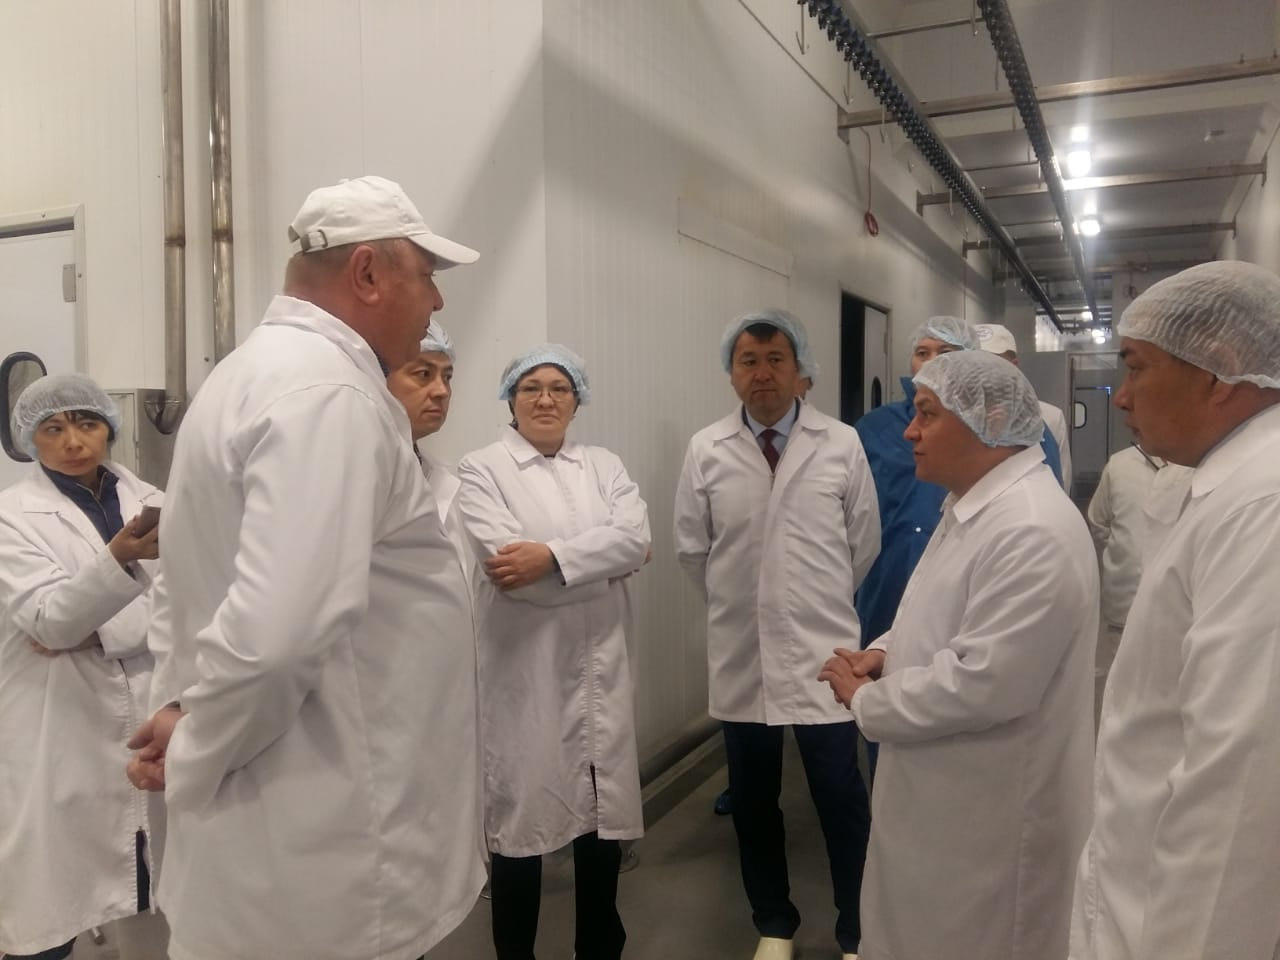 Visit of the Akim of Akmola Region to the Makinsk Poultry Farm